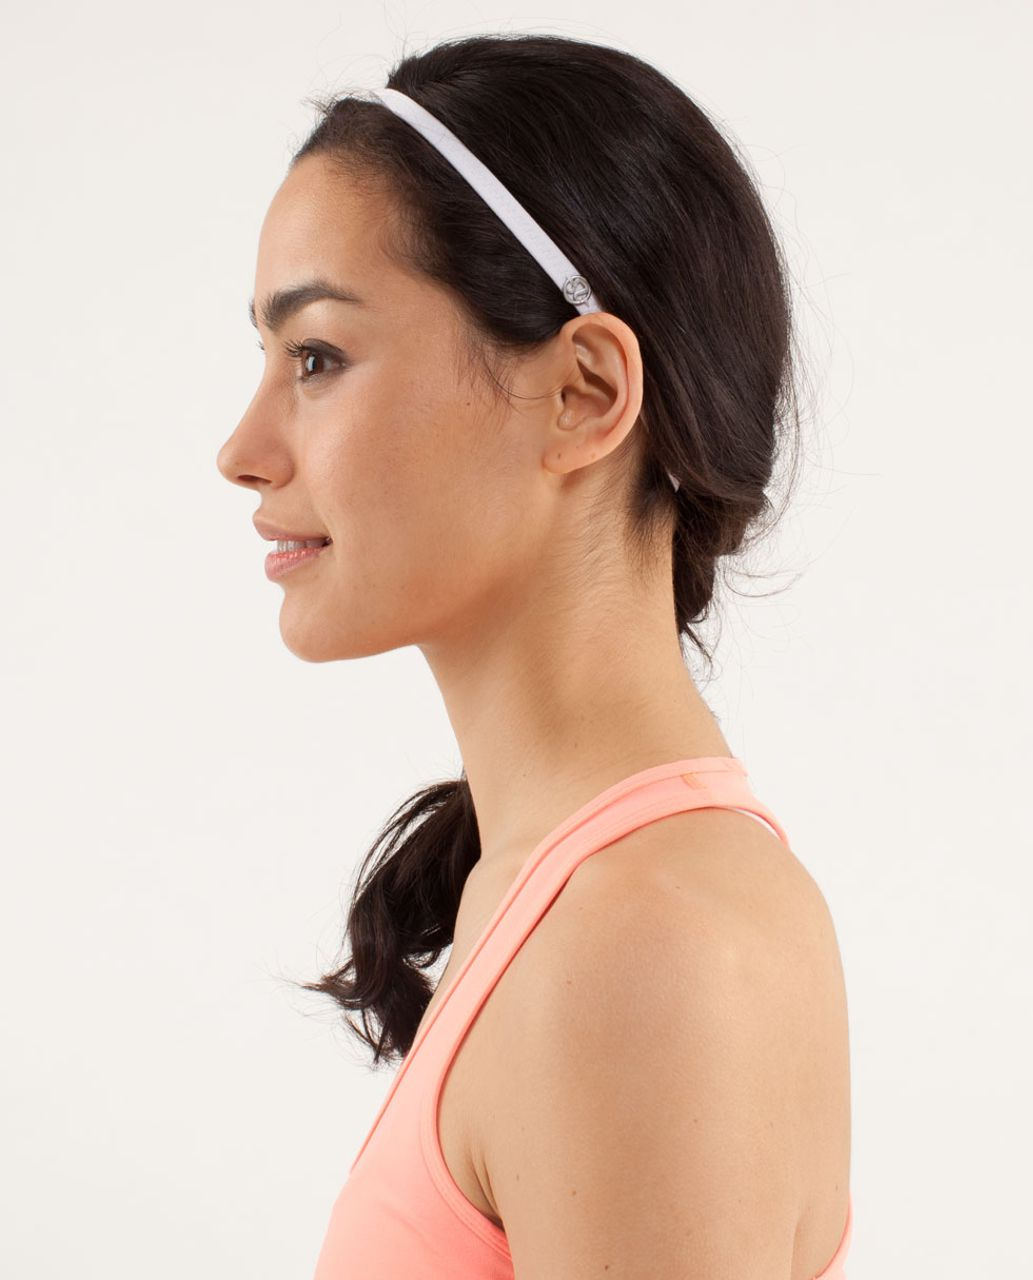 Lululemon Strappy Headband - White (First Release)